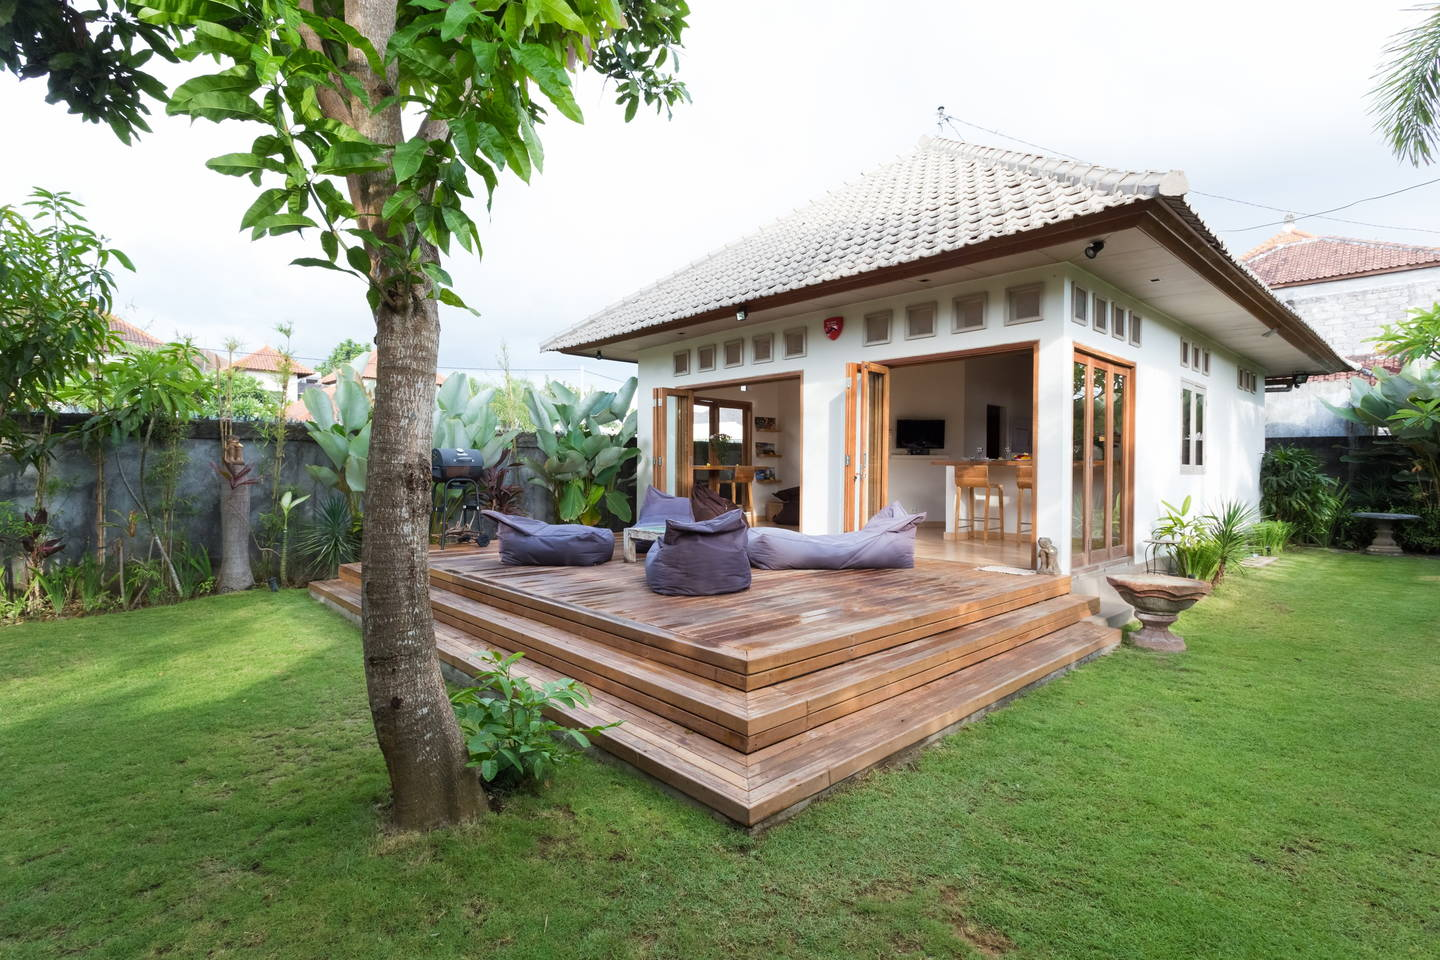 for Bali home inspirational design ideas